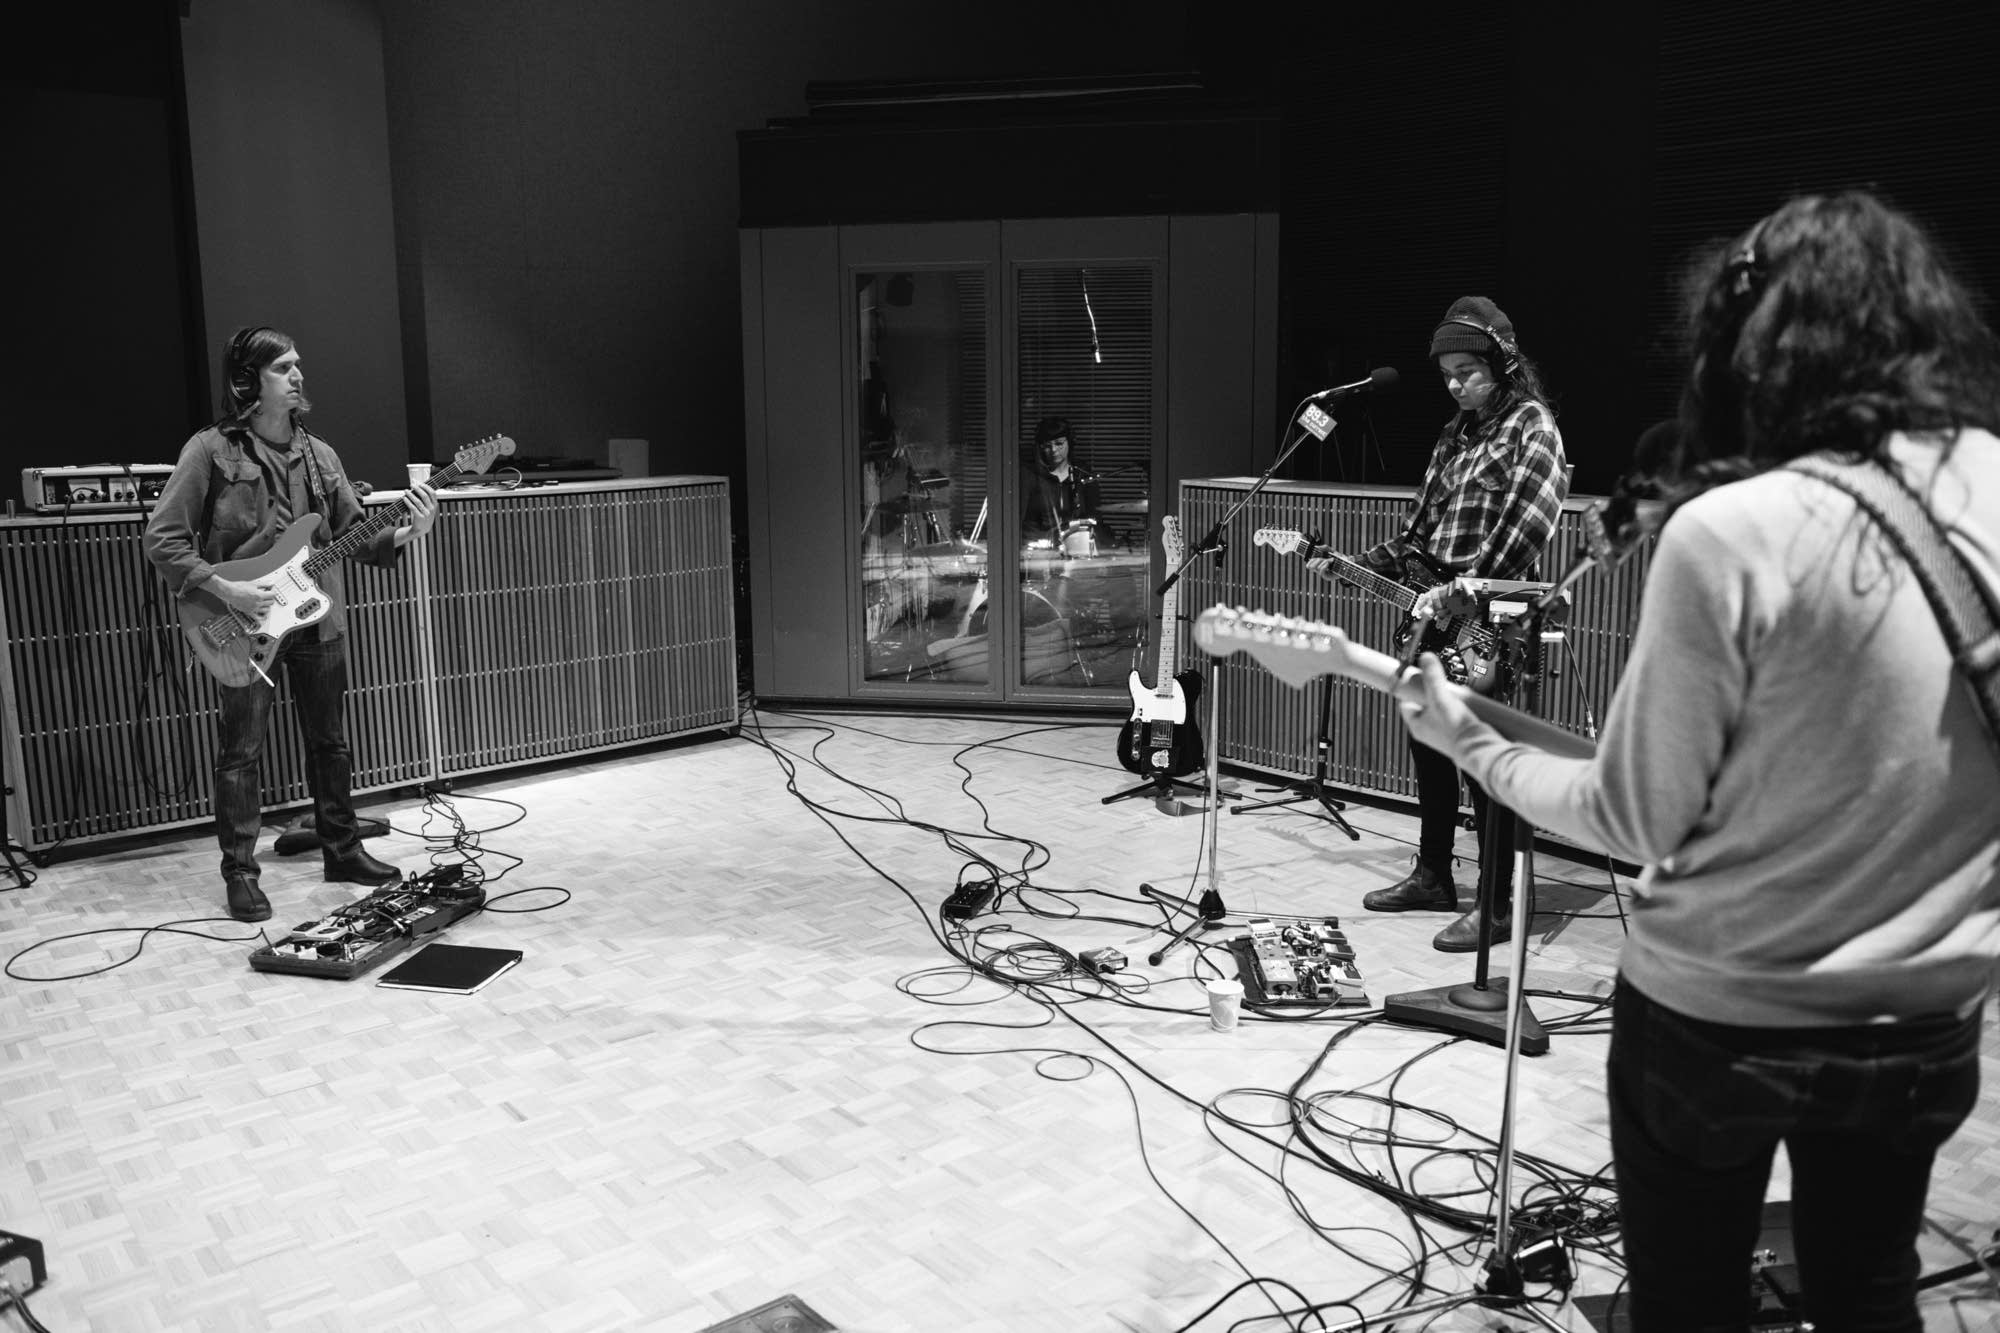 Kurt Vile and Courtney Barnett perform in The Current studio